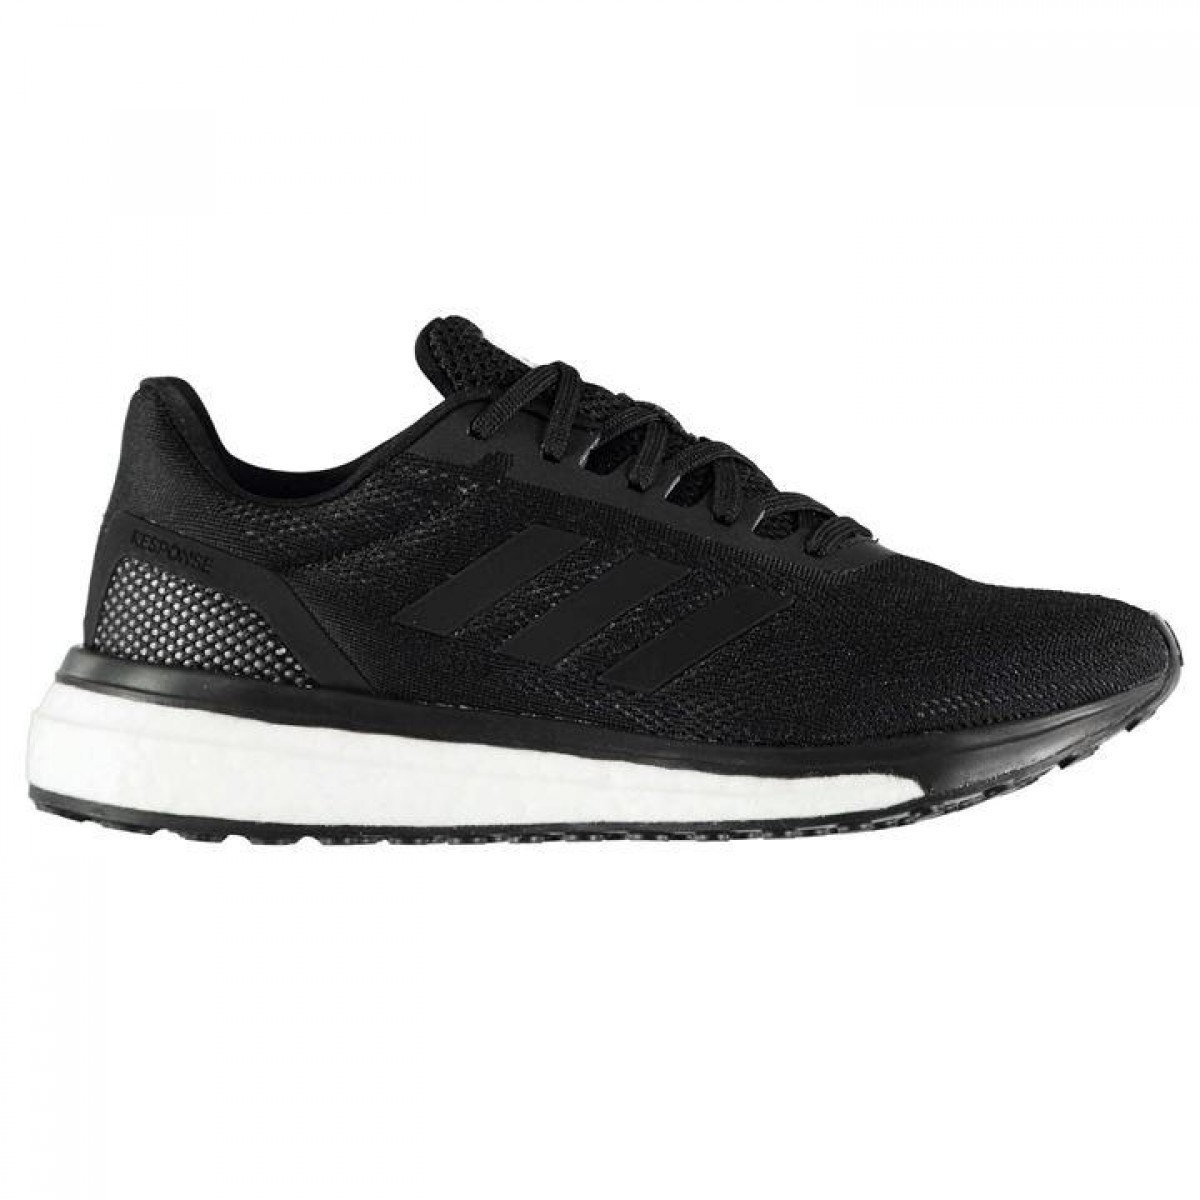 Кроссовки Adidas Response Ladies Black/White - Оригинал, фото 1